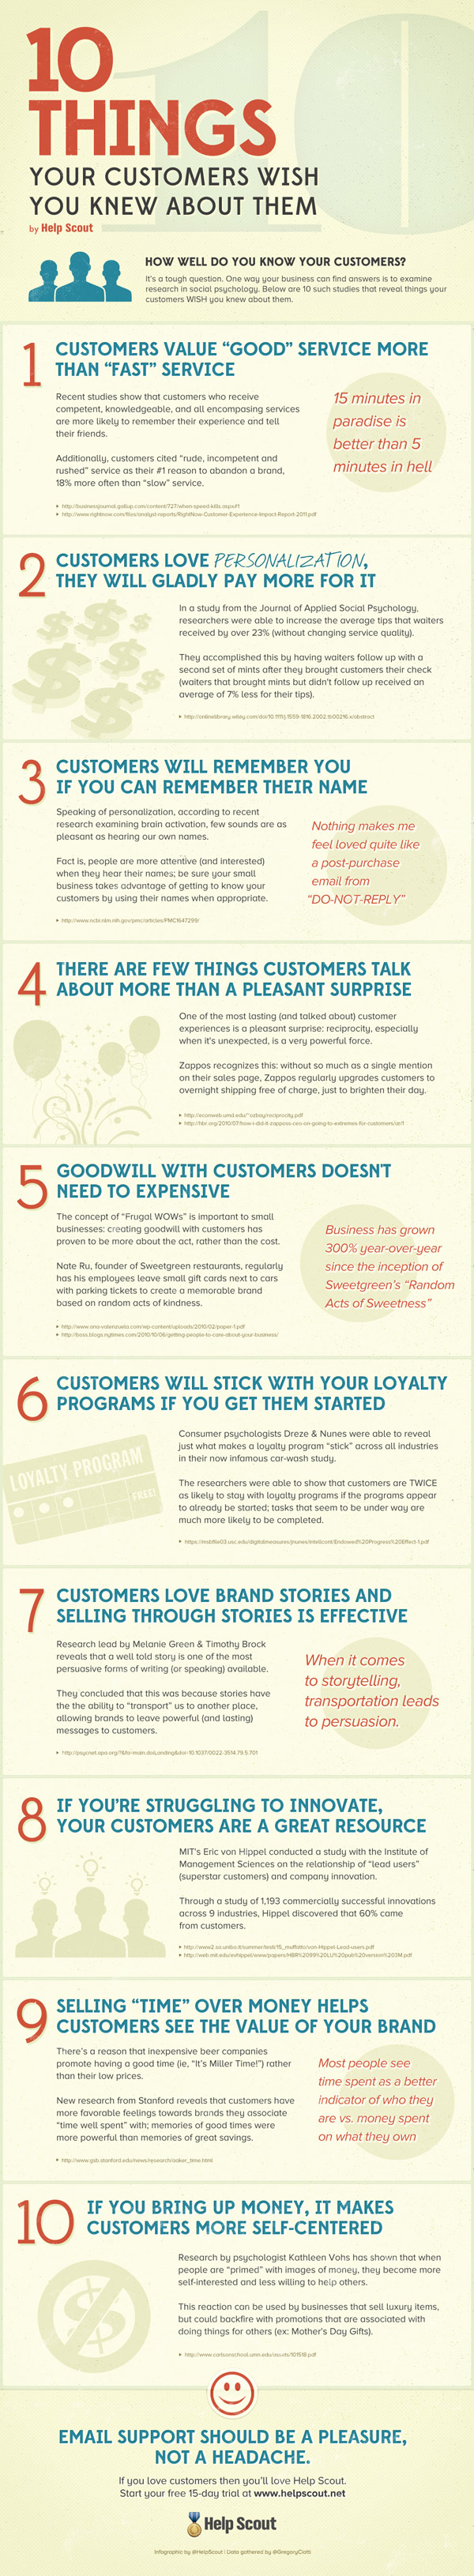 10_things_you_should_know_about_your_customers